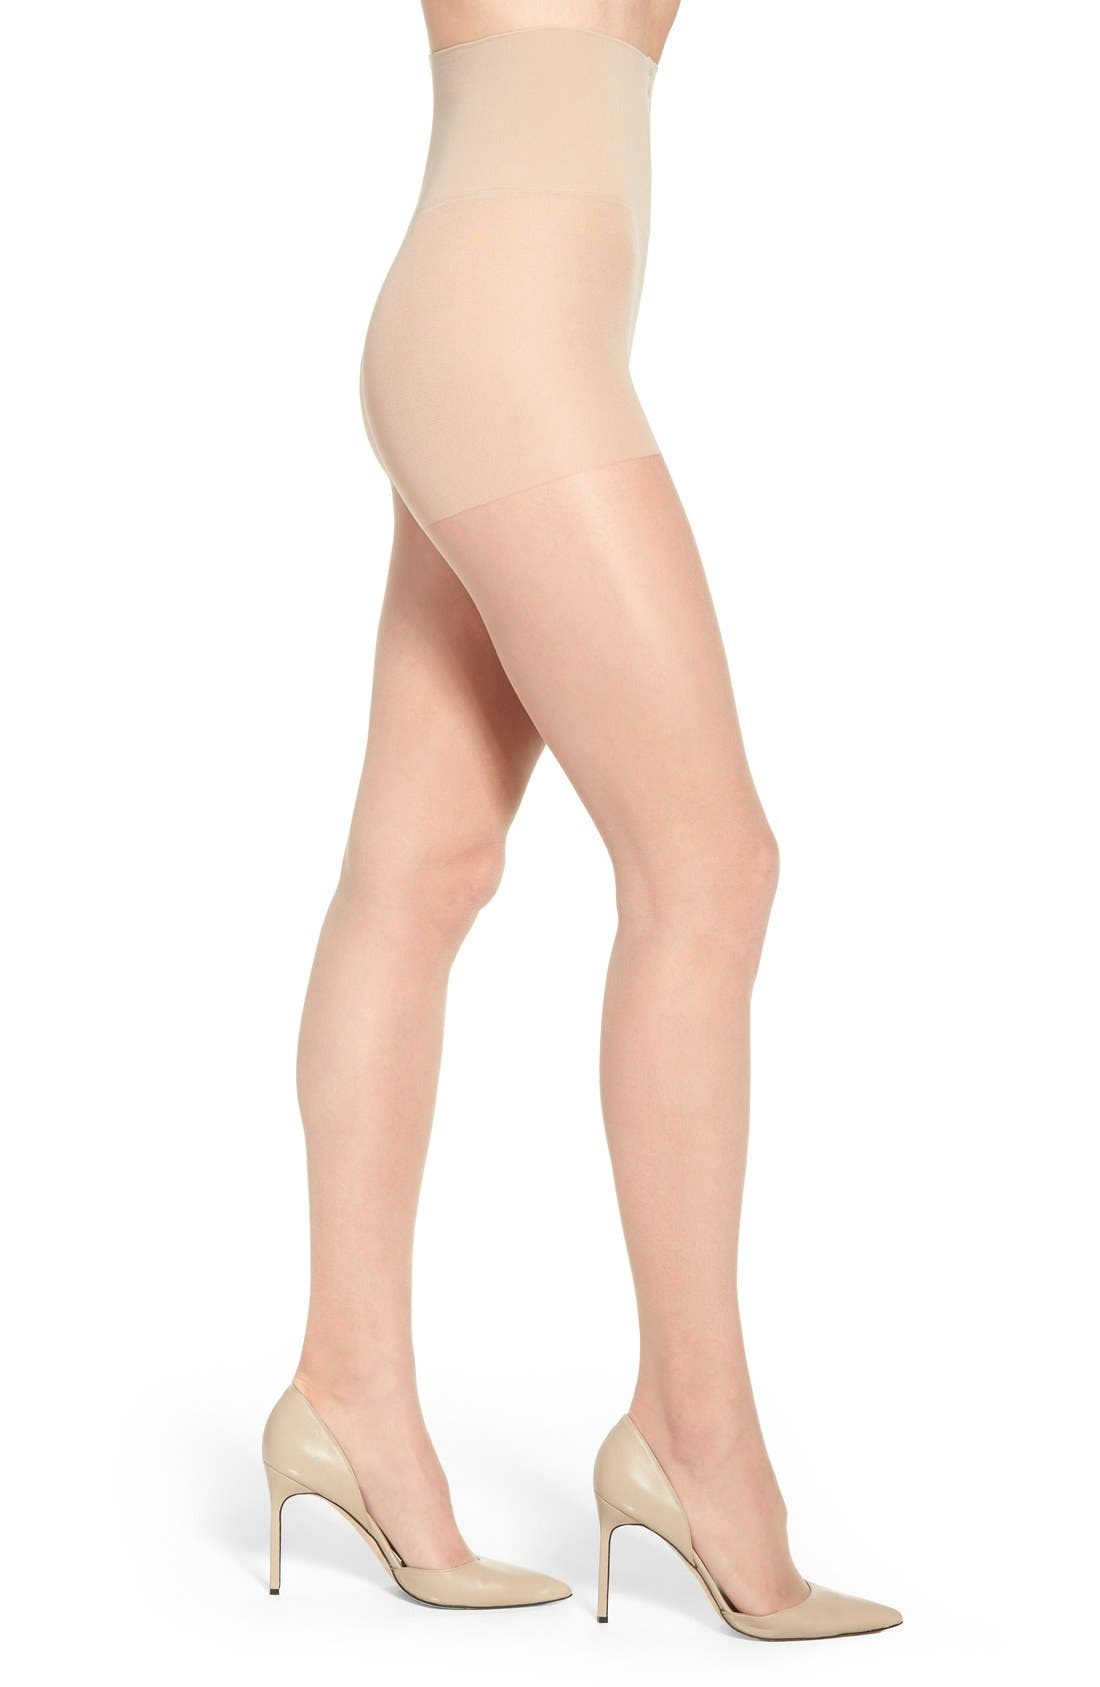 Nordstrom Waist Control Sheer Pantyhose (3 for $36)